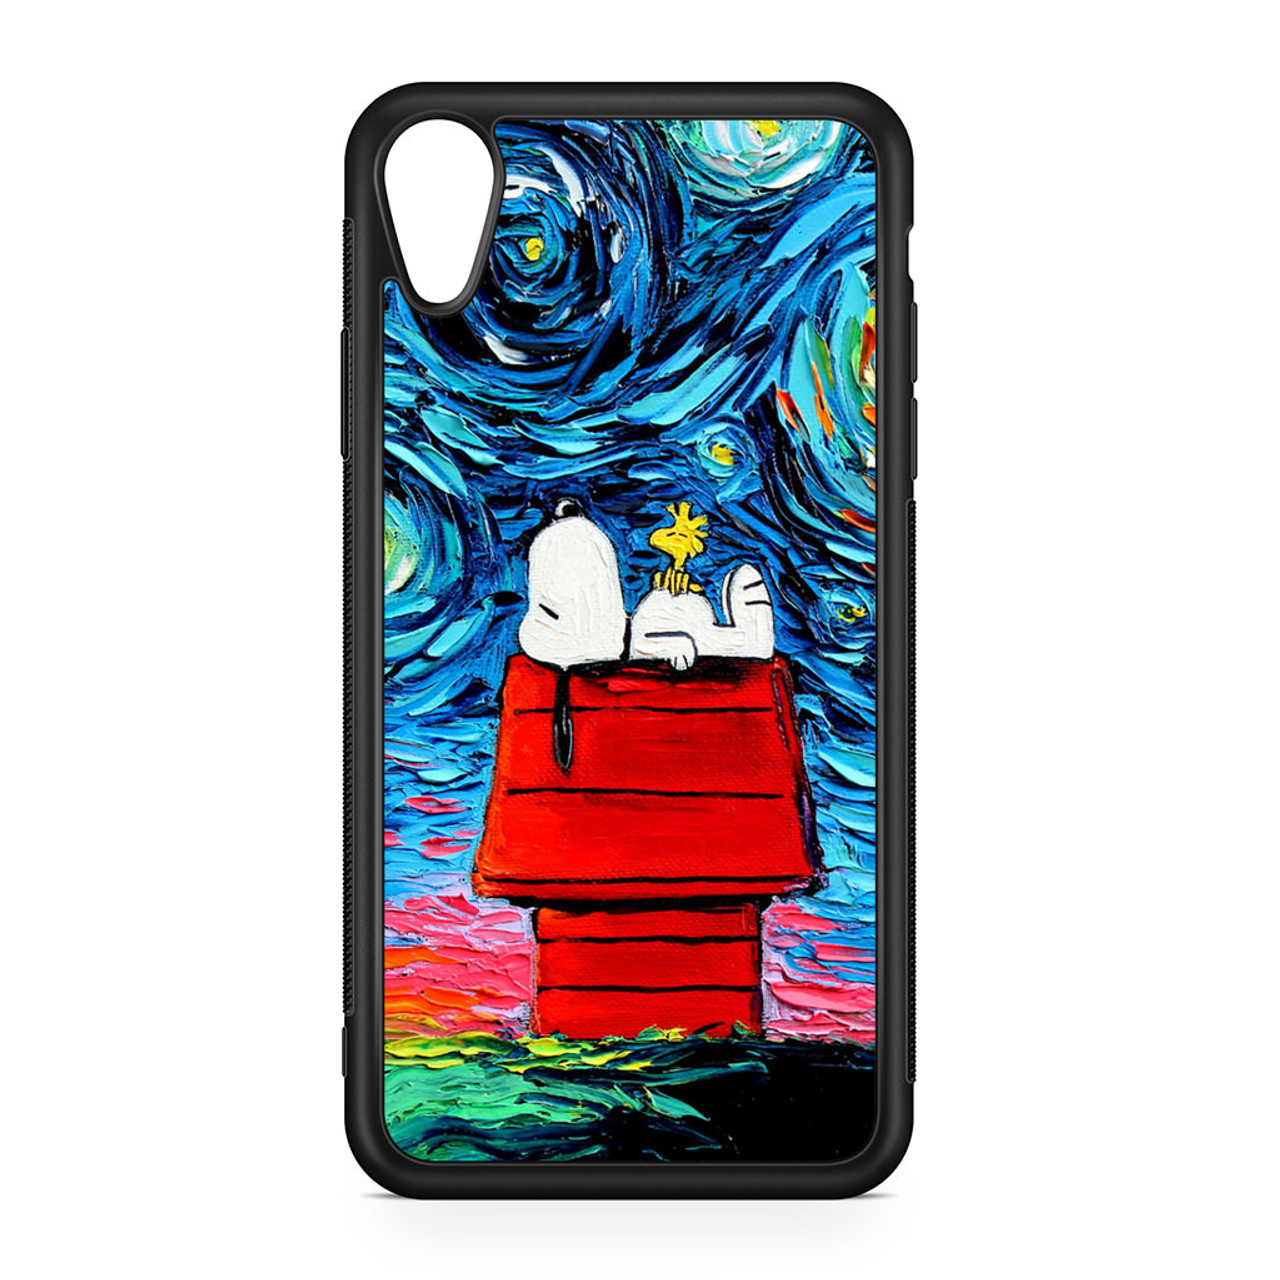 snoopy iphone xr case